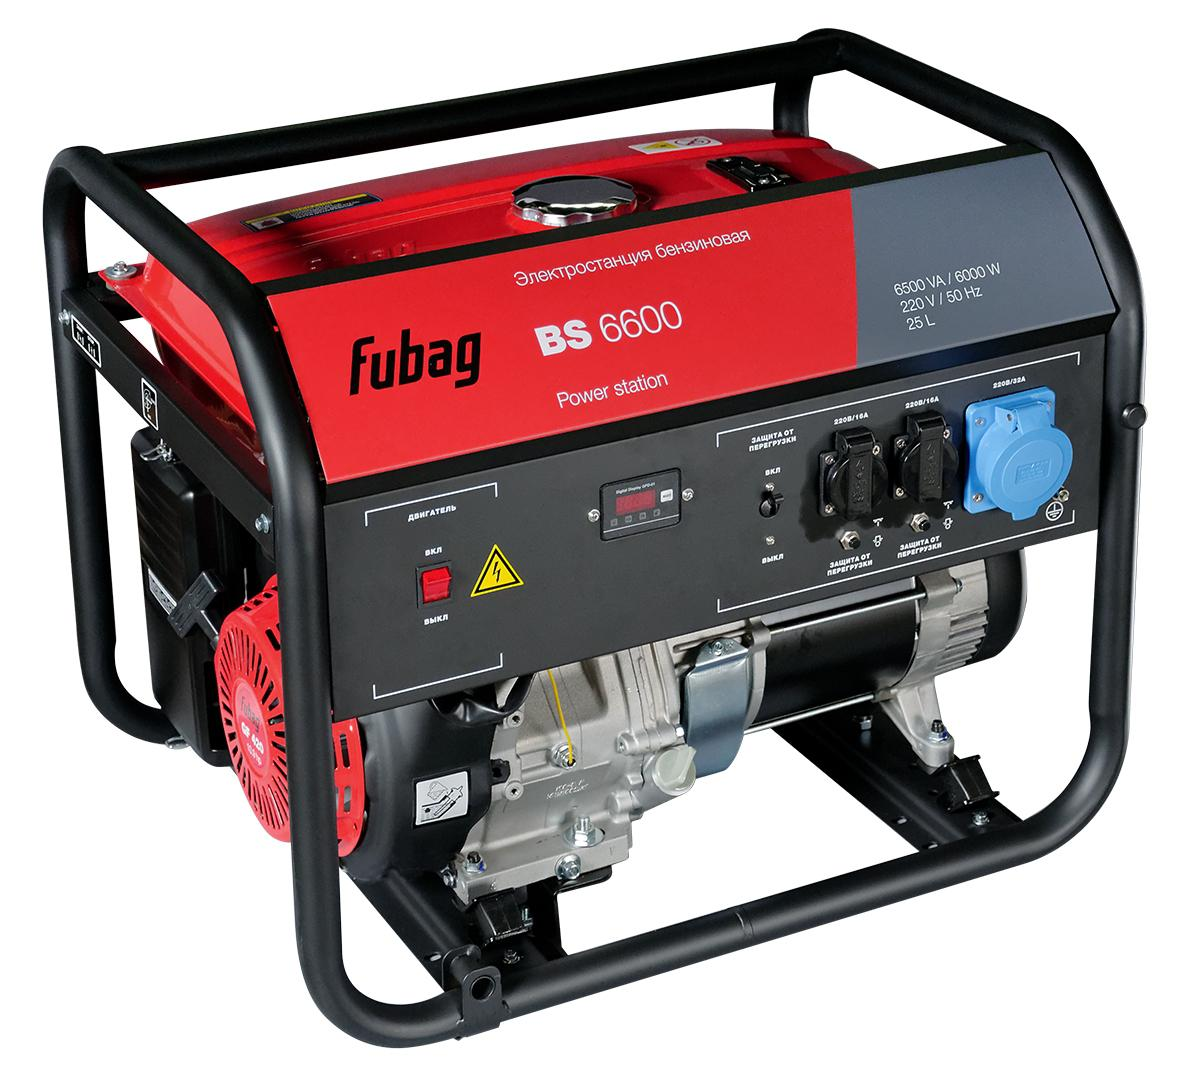 Бензиновый генератор Fubag Bs 6600 бензиновый генератор fubag bs 3500 duplex